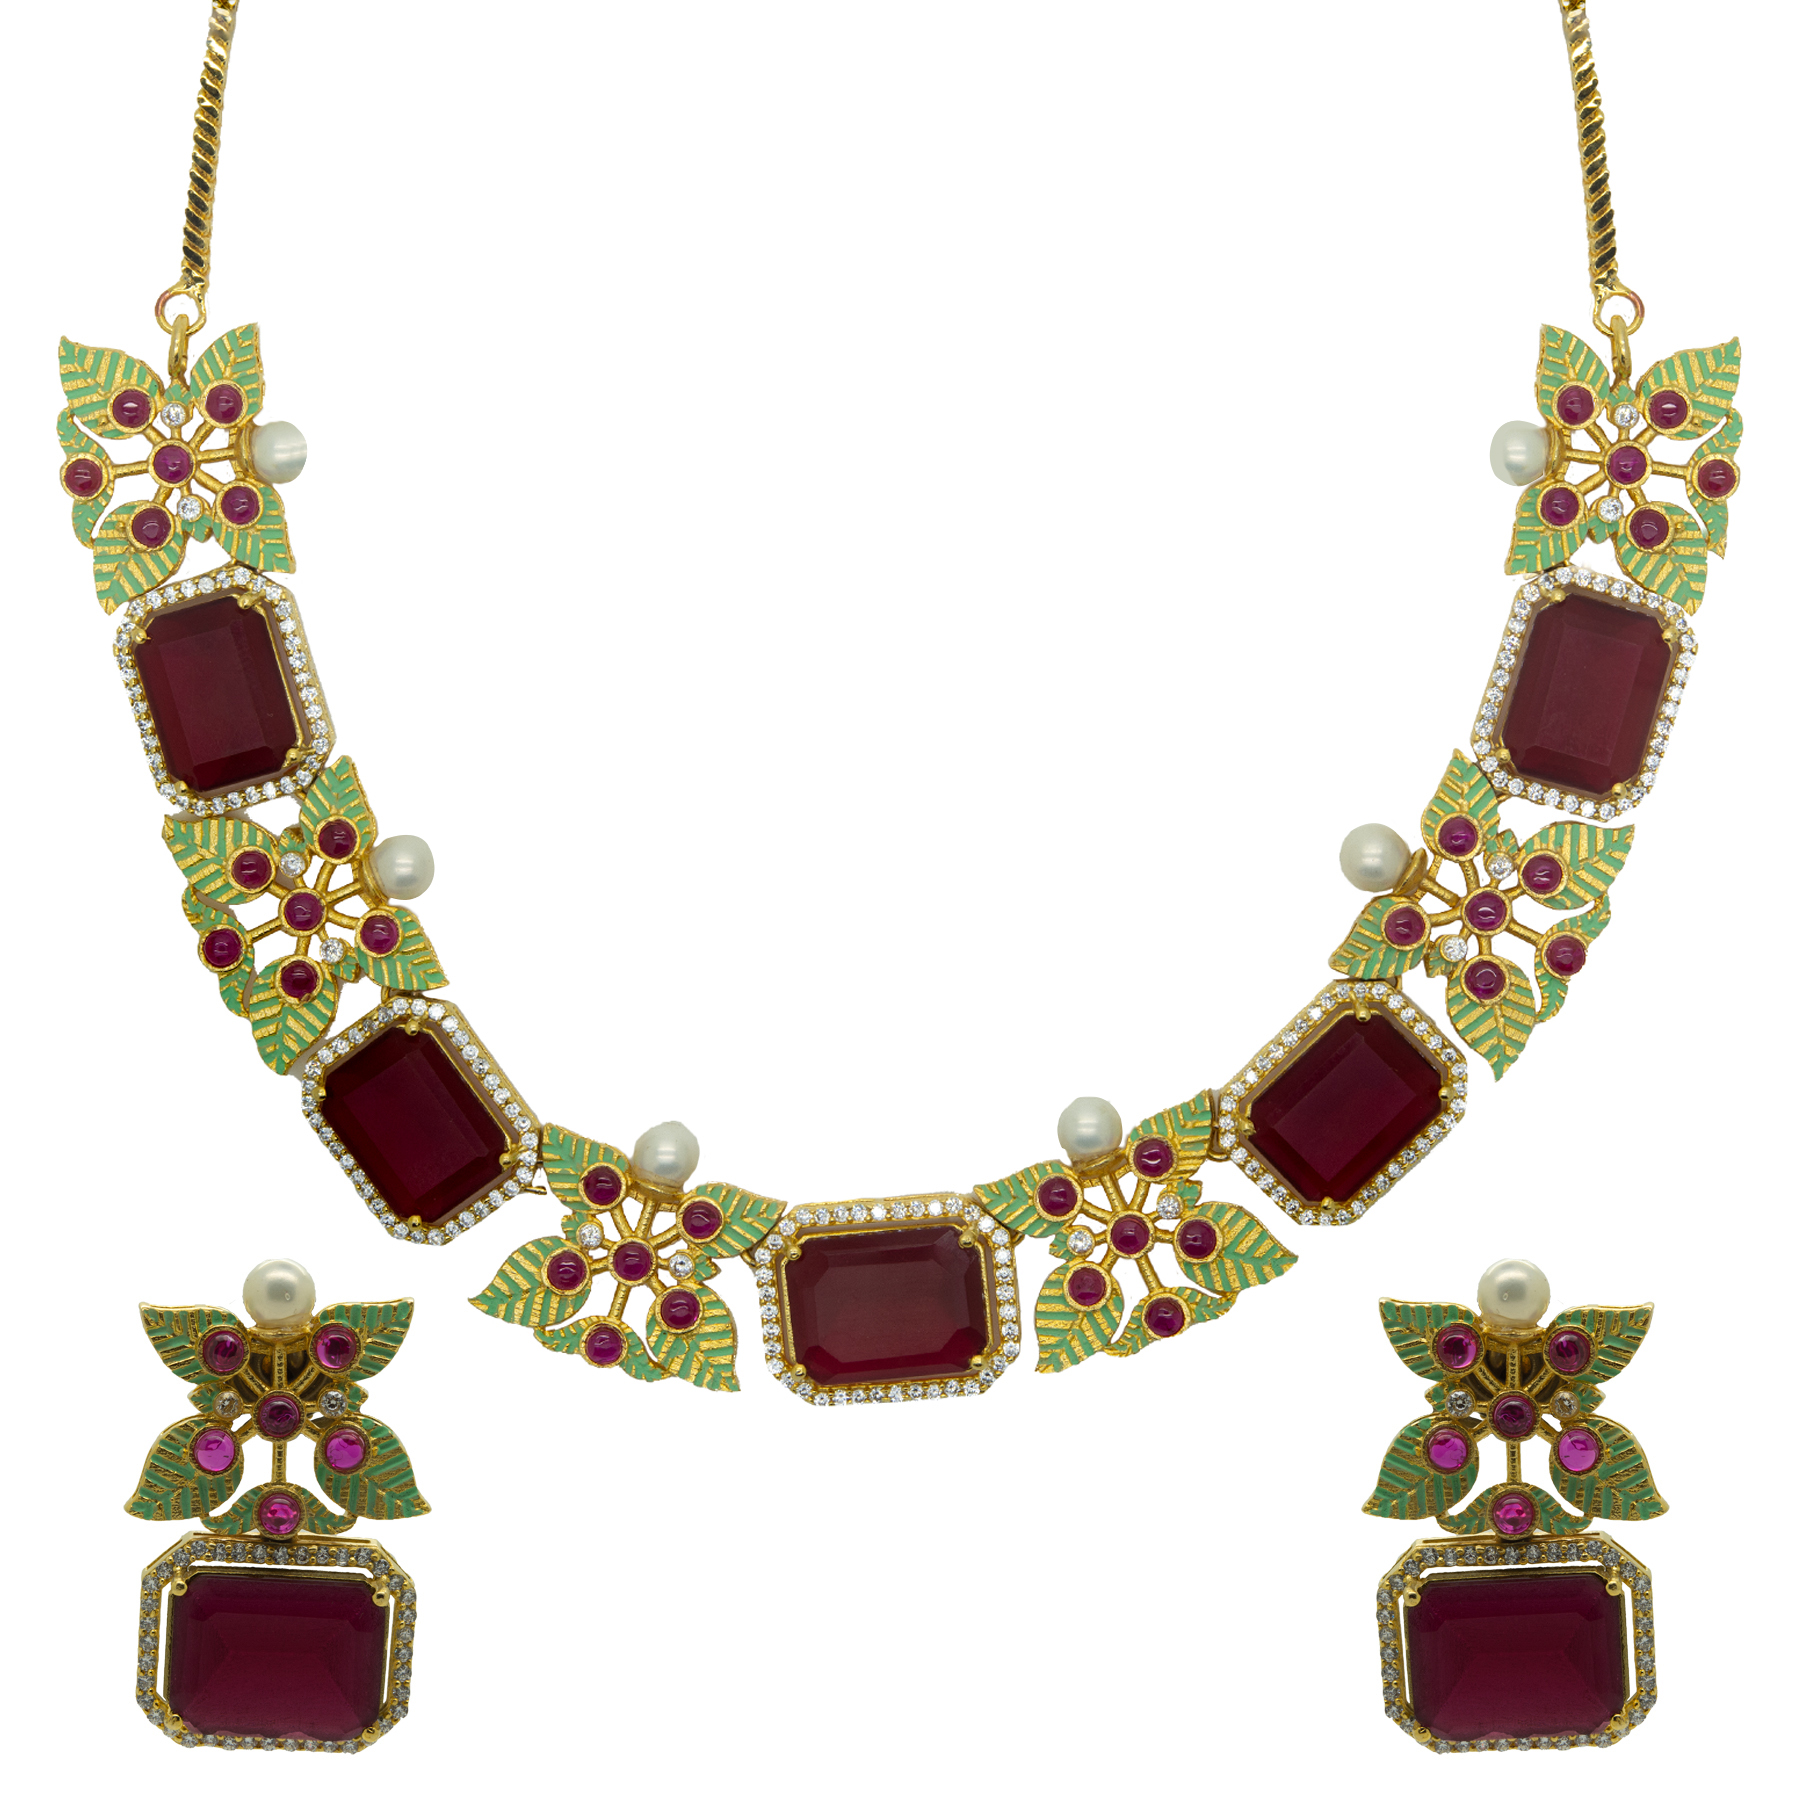 Handcrafted Meenakari Stone Necklace With Earrings 2